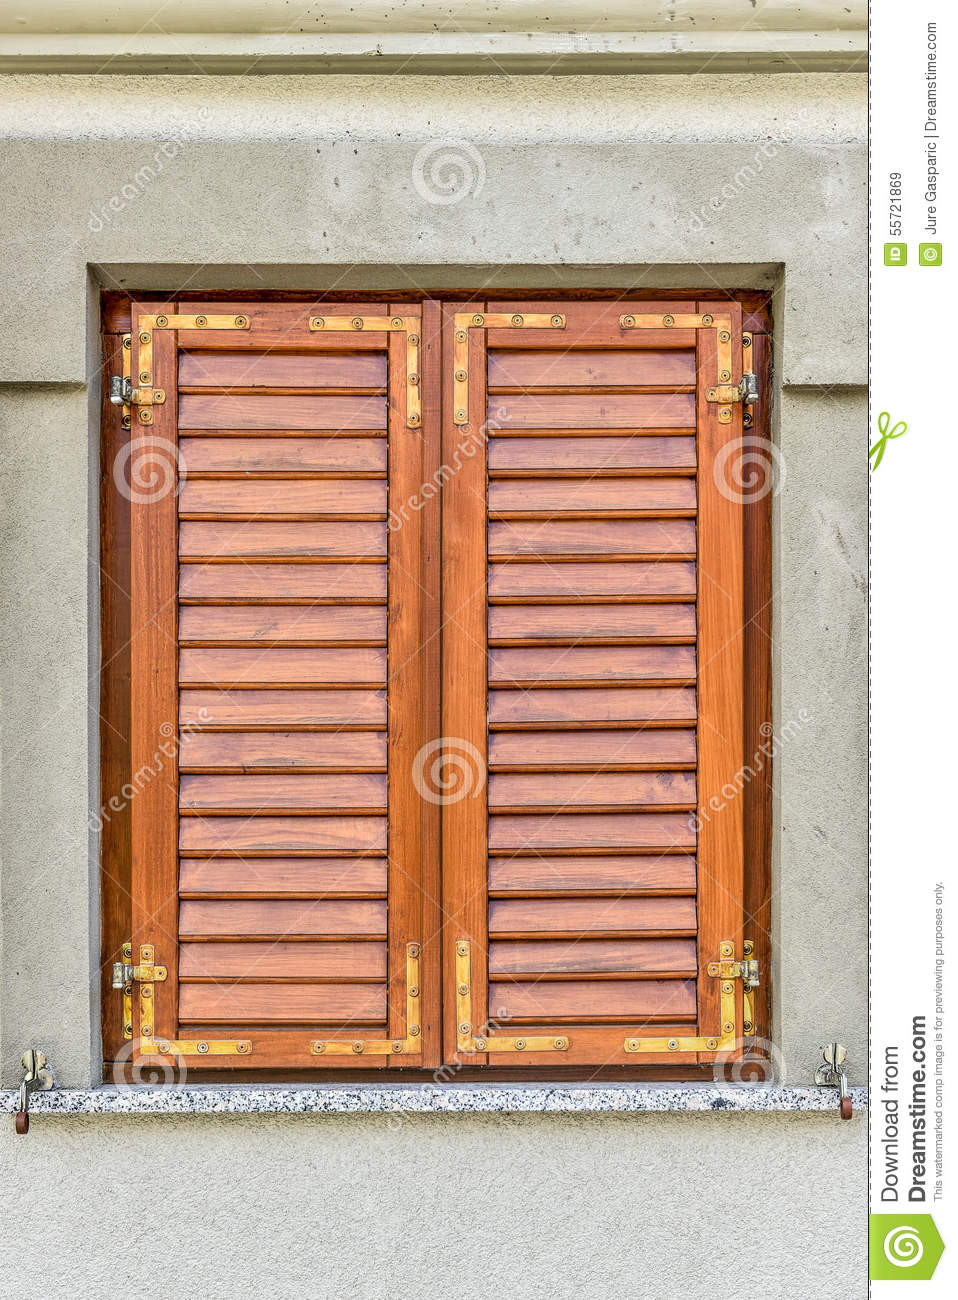 Brown window withclosed shutters stock image image 55721869 for European shutters